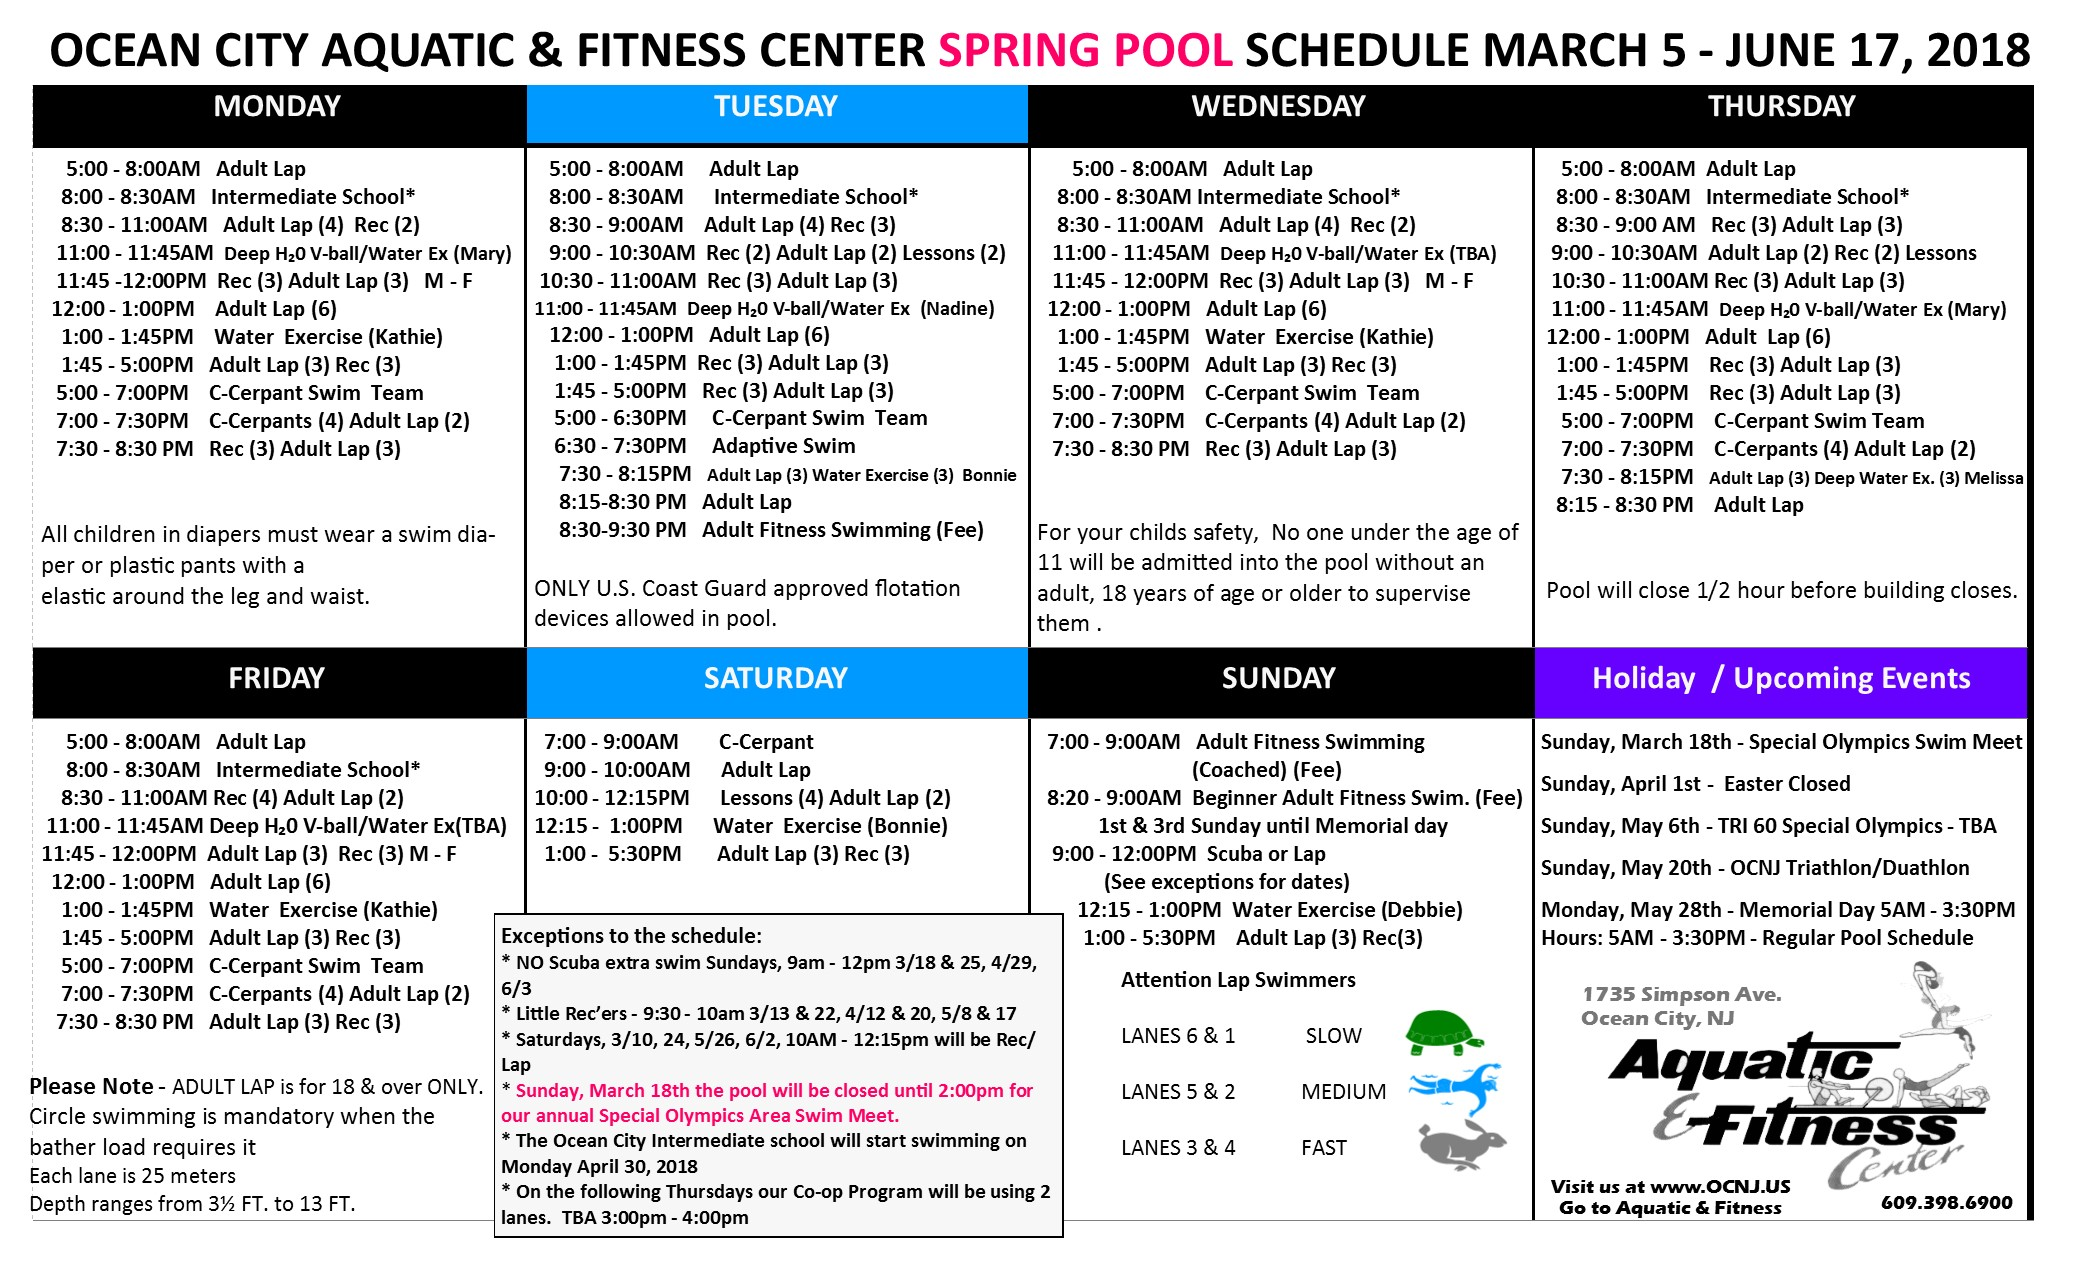 Tide chart for ocean city nj gallery free any chart examples aquatic and fitness center spring pool schedule nvjuhfo gallery nvjuhfo Choice Image